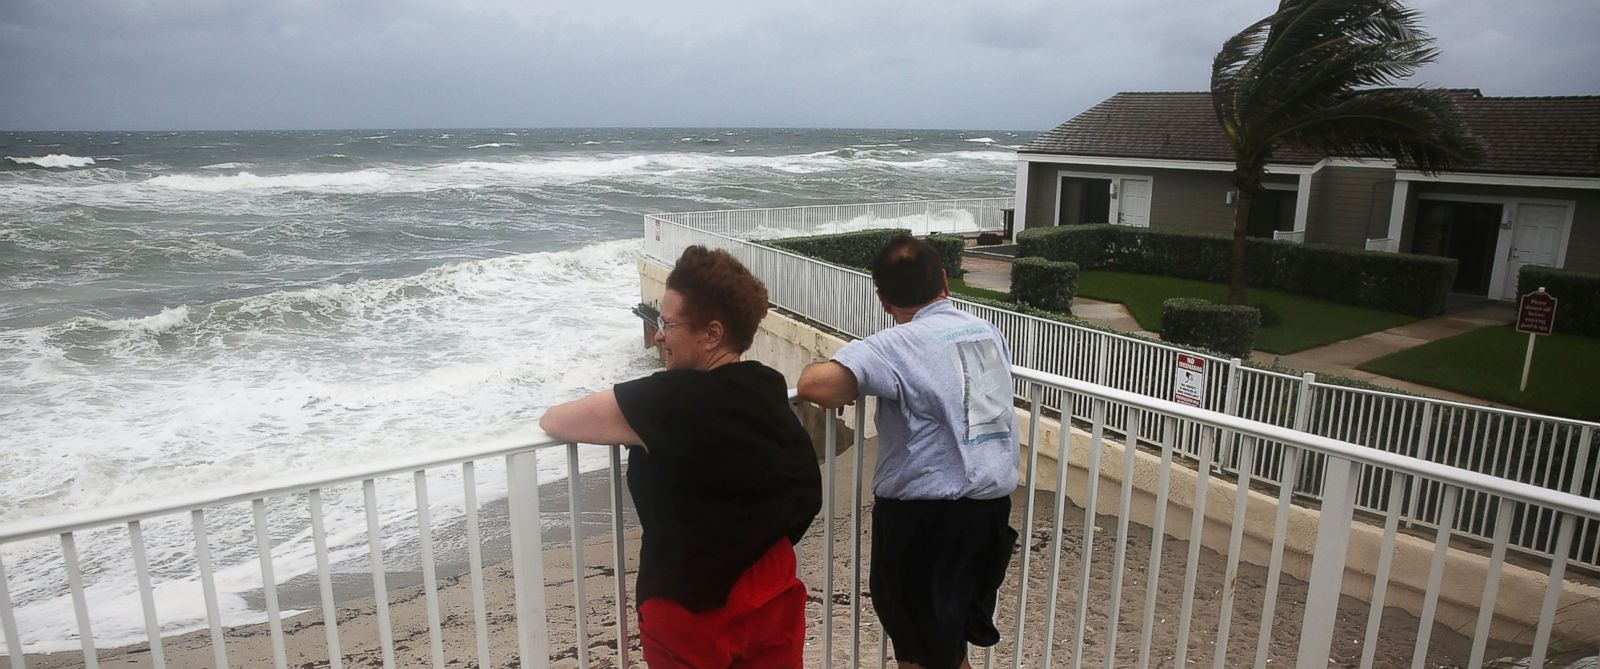 PHOTO: People look out at the churning ocean as Hurricane Matthew approaches the area, Oct. 6, 2016, in Jupiter, Florida.